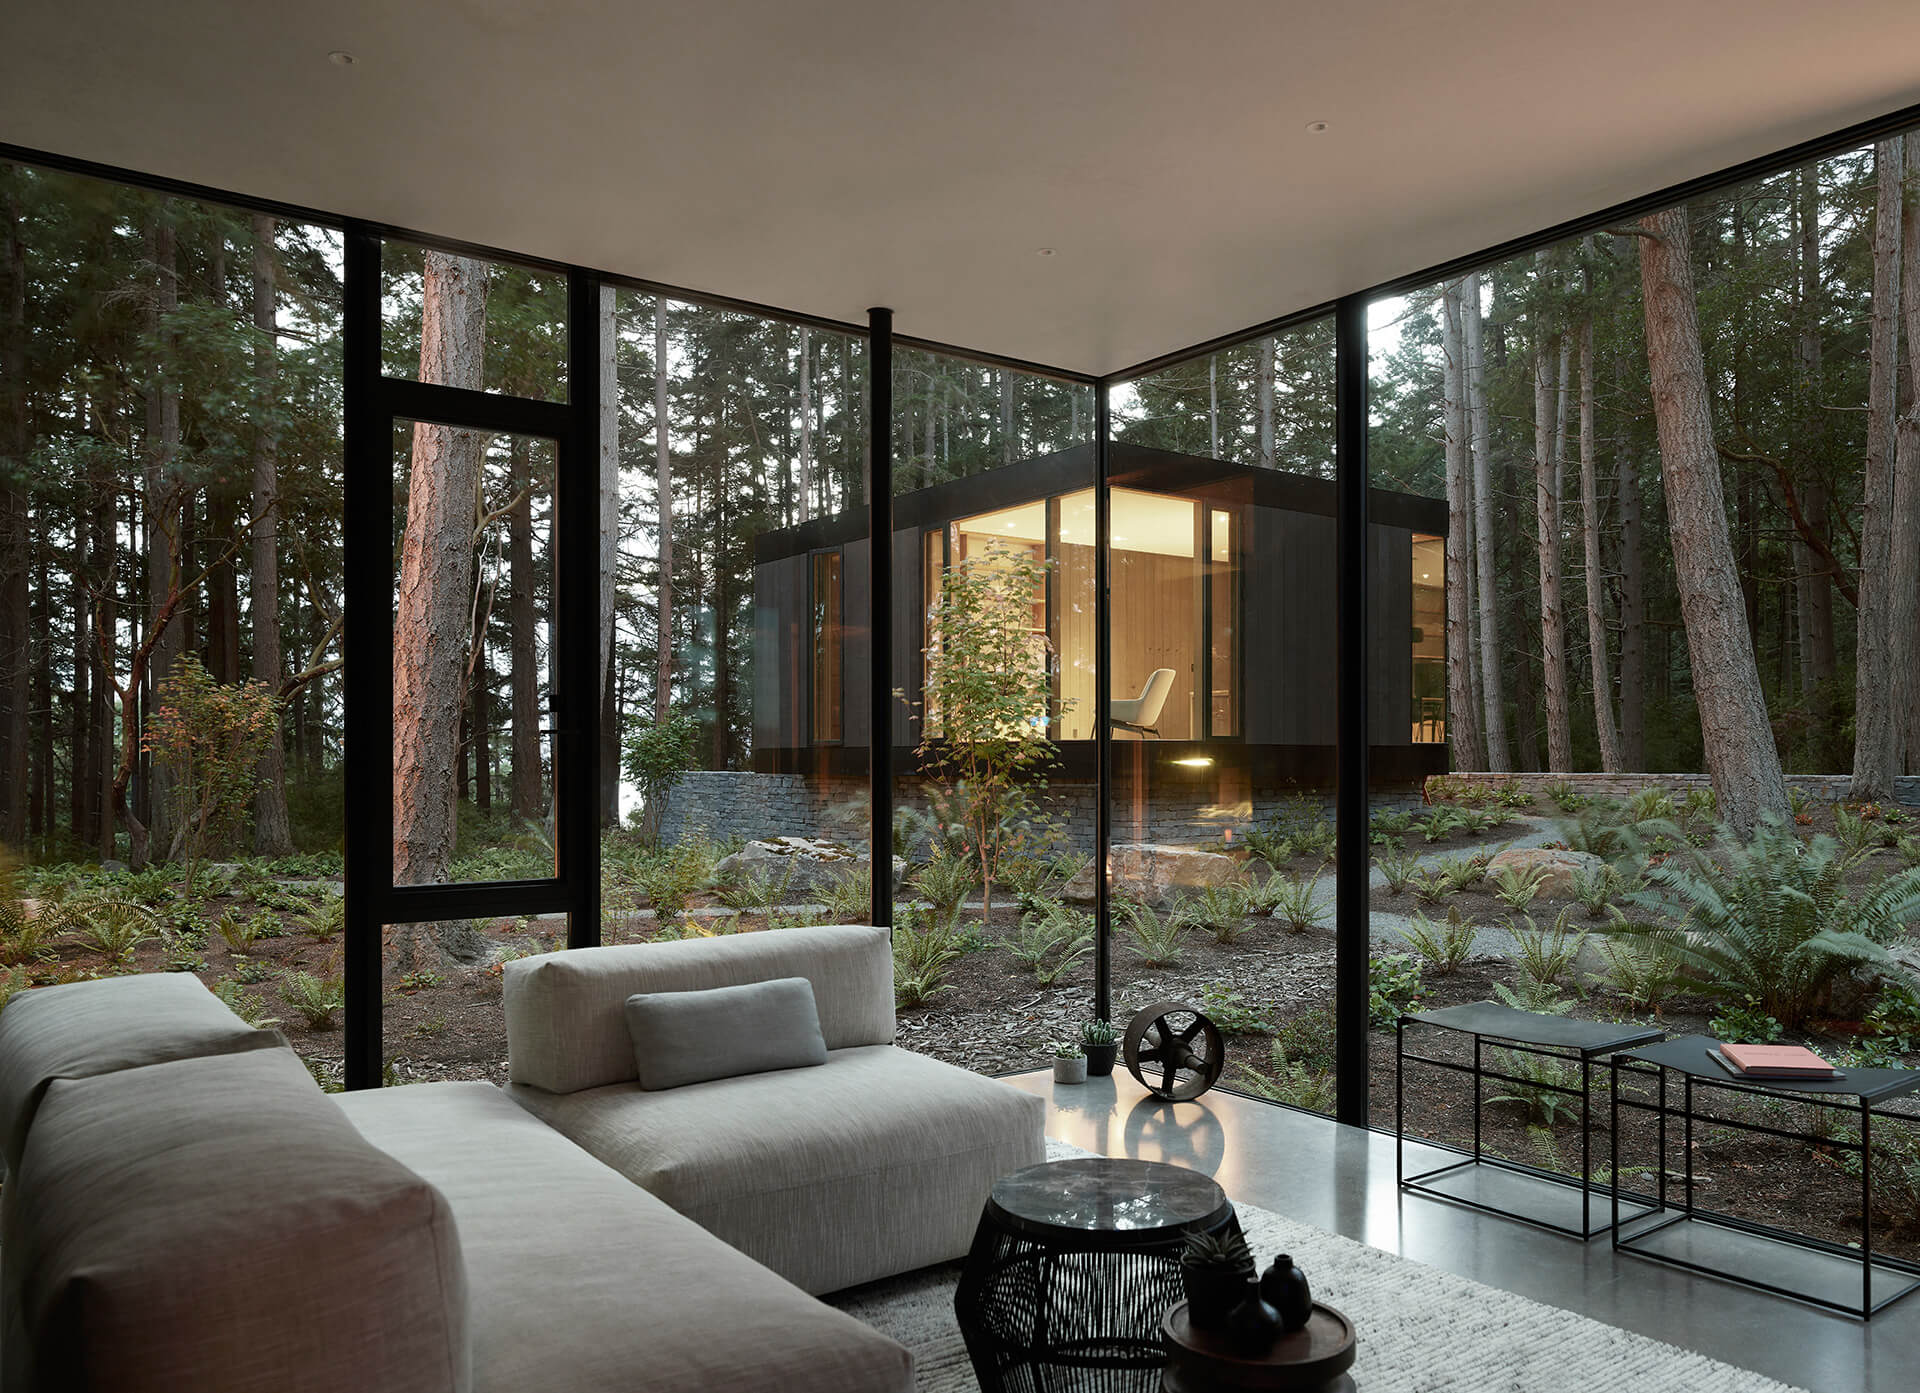 Tall glass volumes blending the Whidbey Island Farm Retreat into the landscape | Whidbey Island Farm Retreat by Mwworks | STIRworld